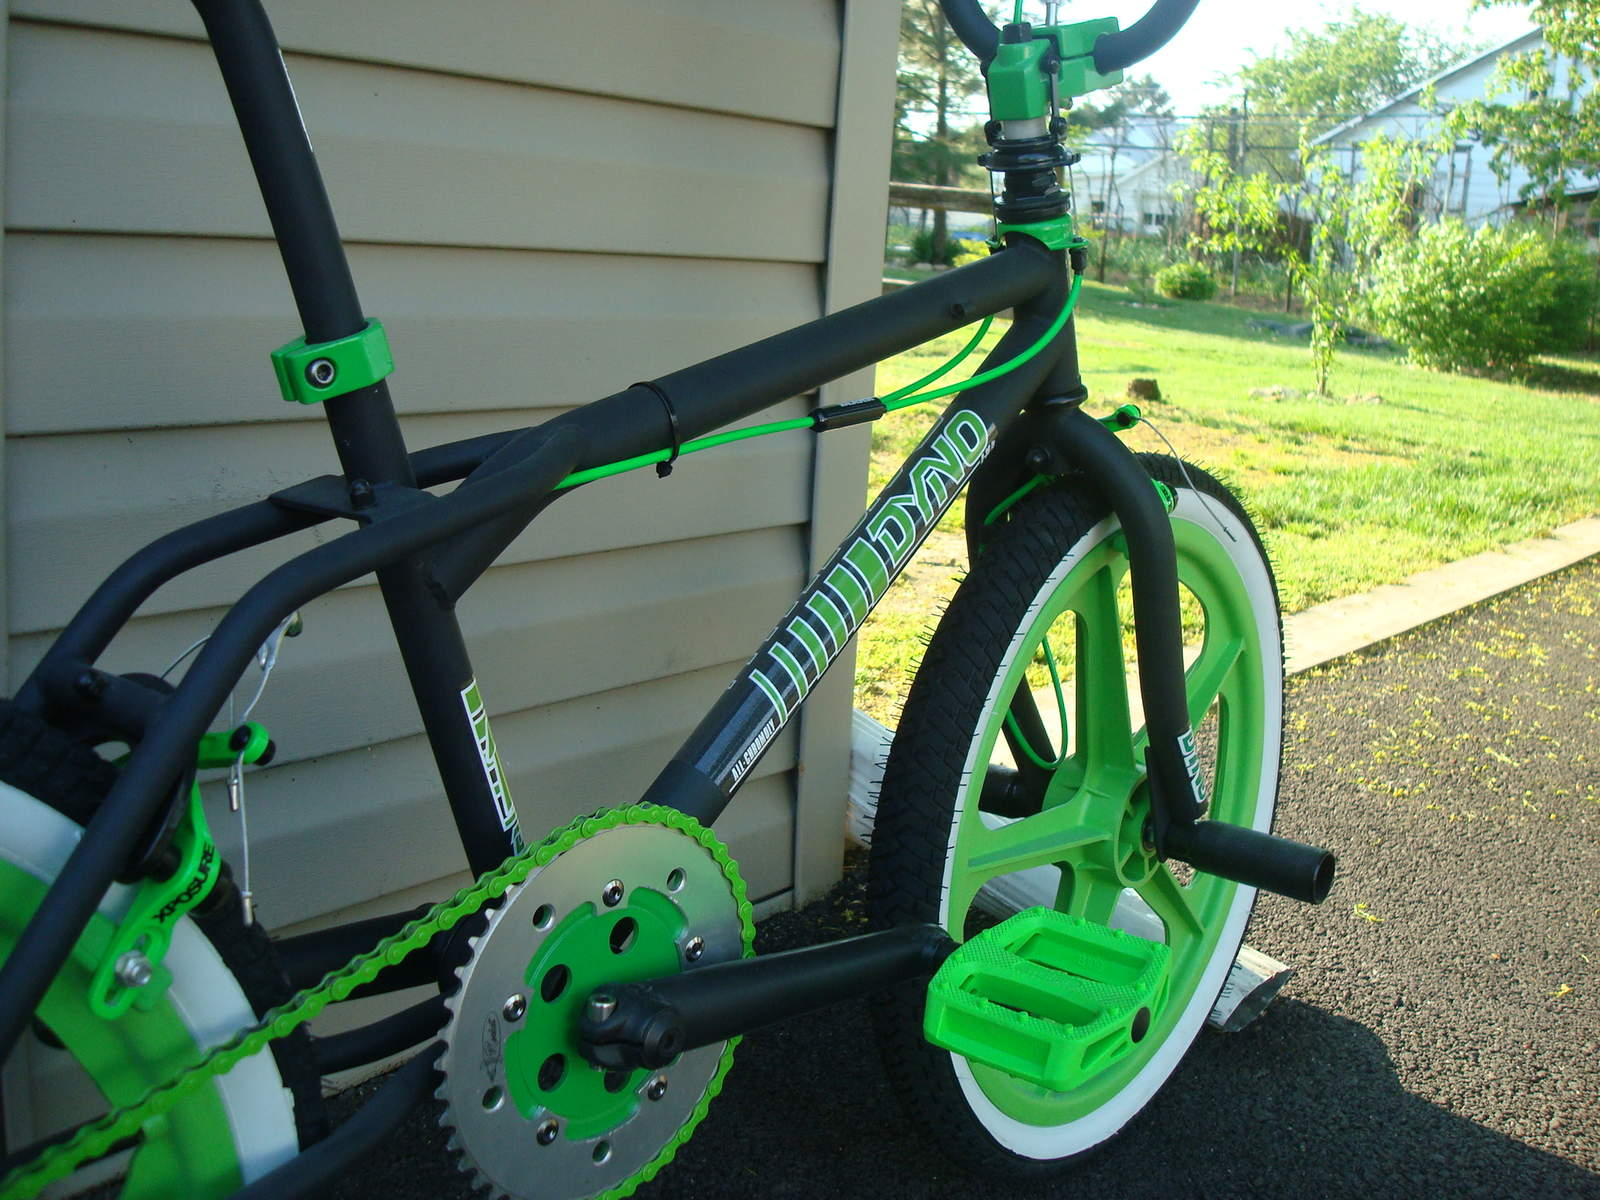 https://s3.amazonaws.com/uploads.bmxmuseum.com/user-images/55127/1985-dyno-d-30---black--green-0185956928a0f.jpg